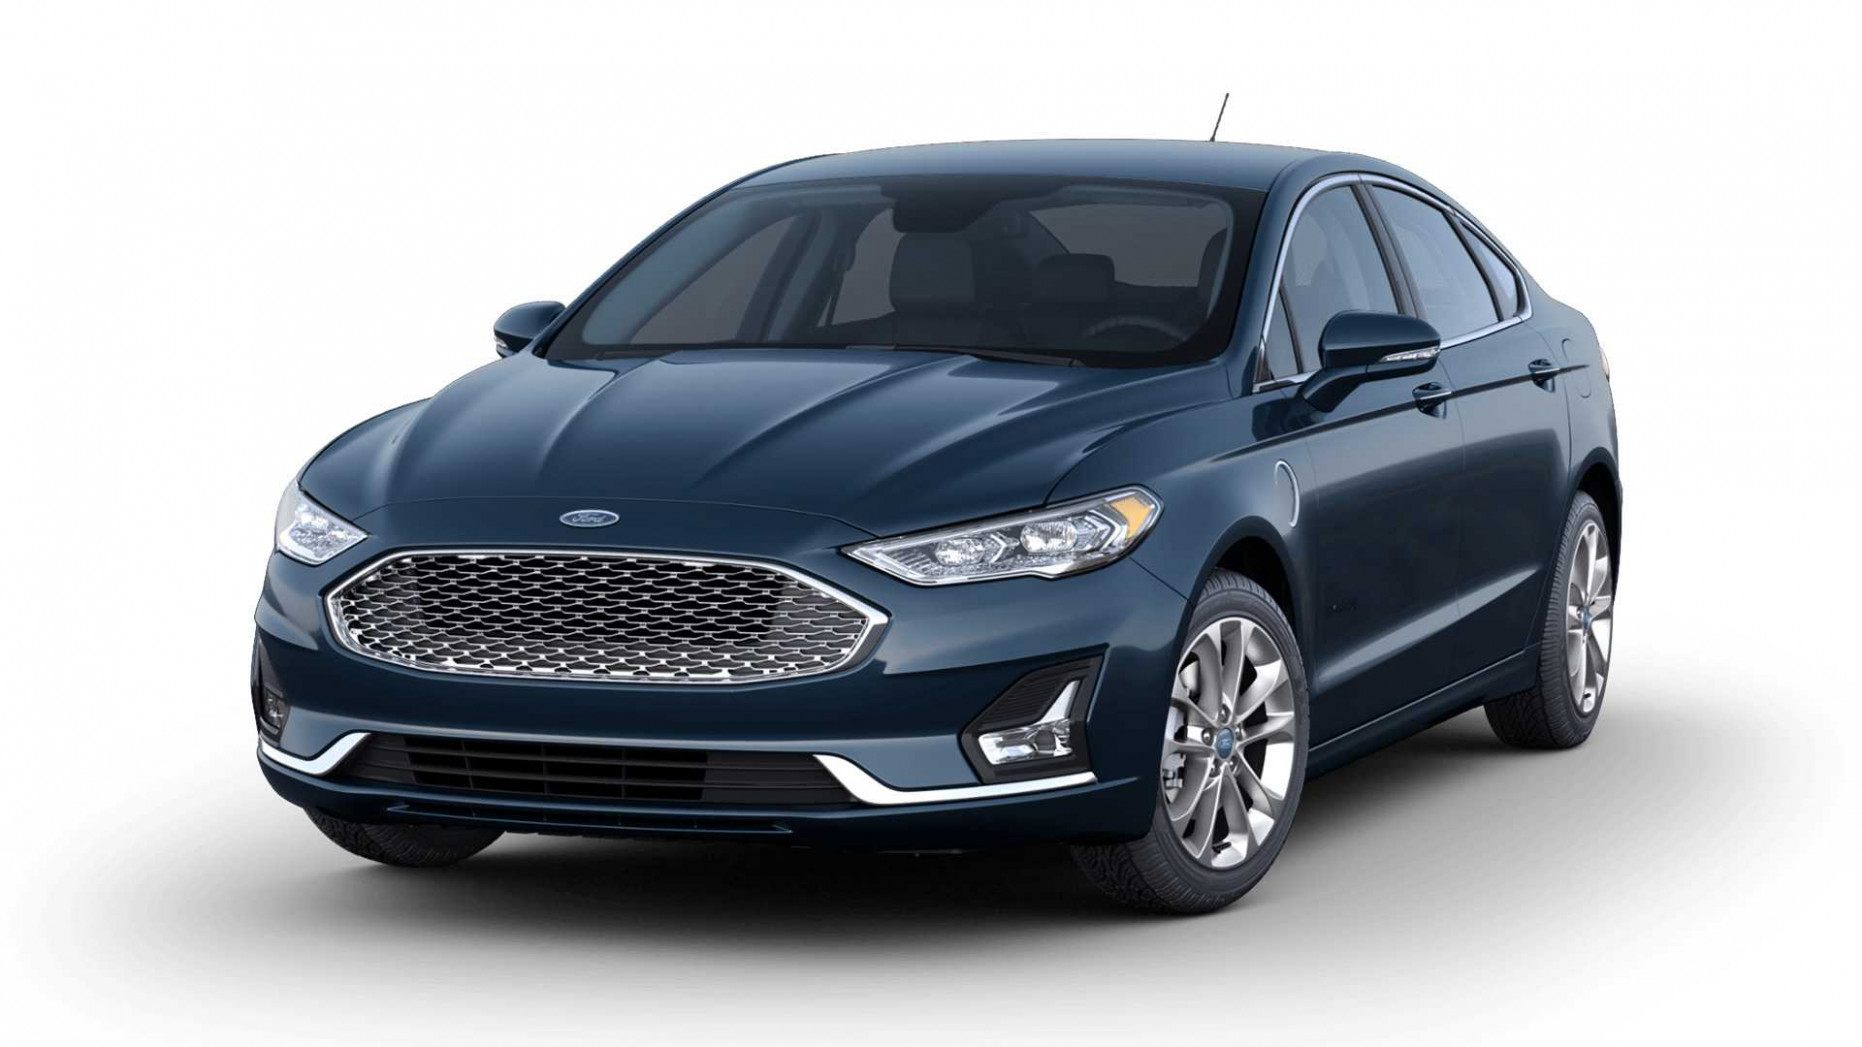 6 Ford Fusion Gets Three New Colors For Its Final Year